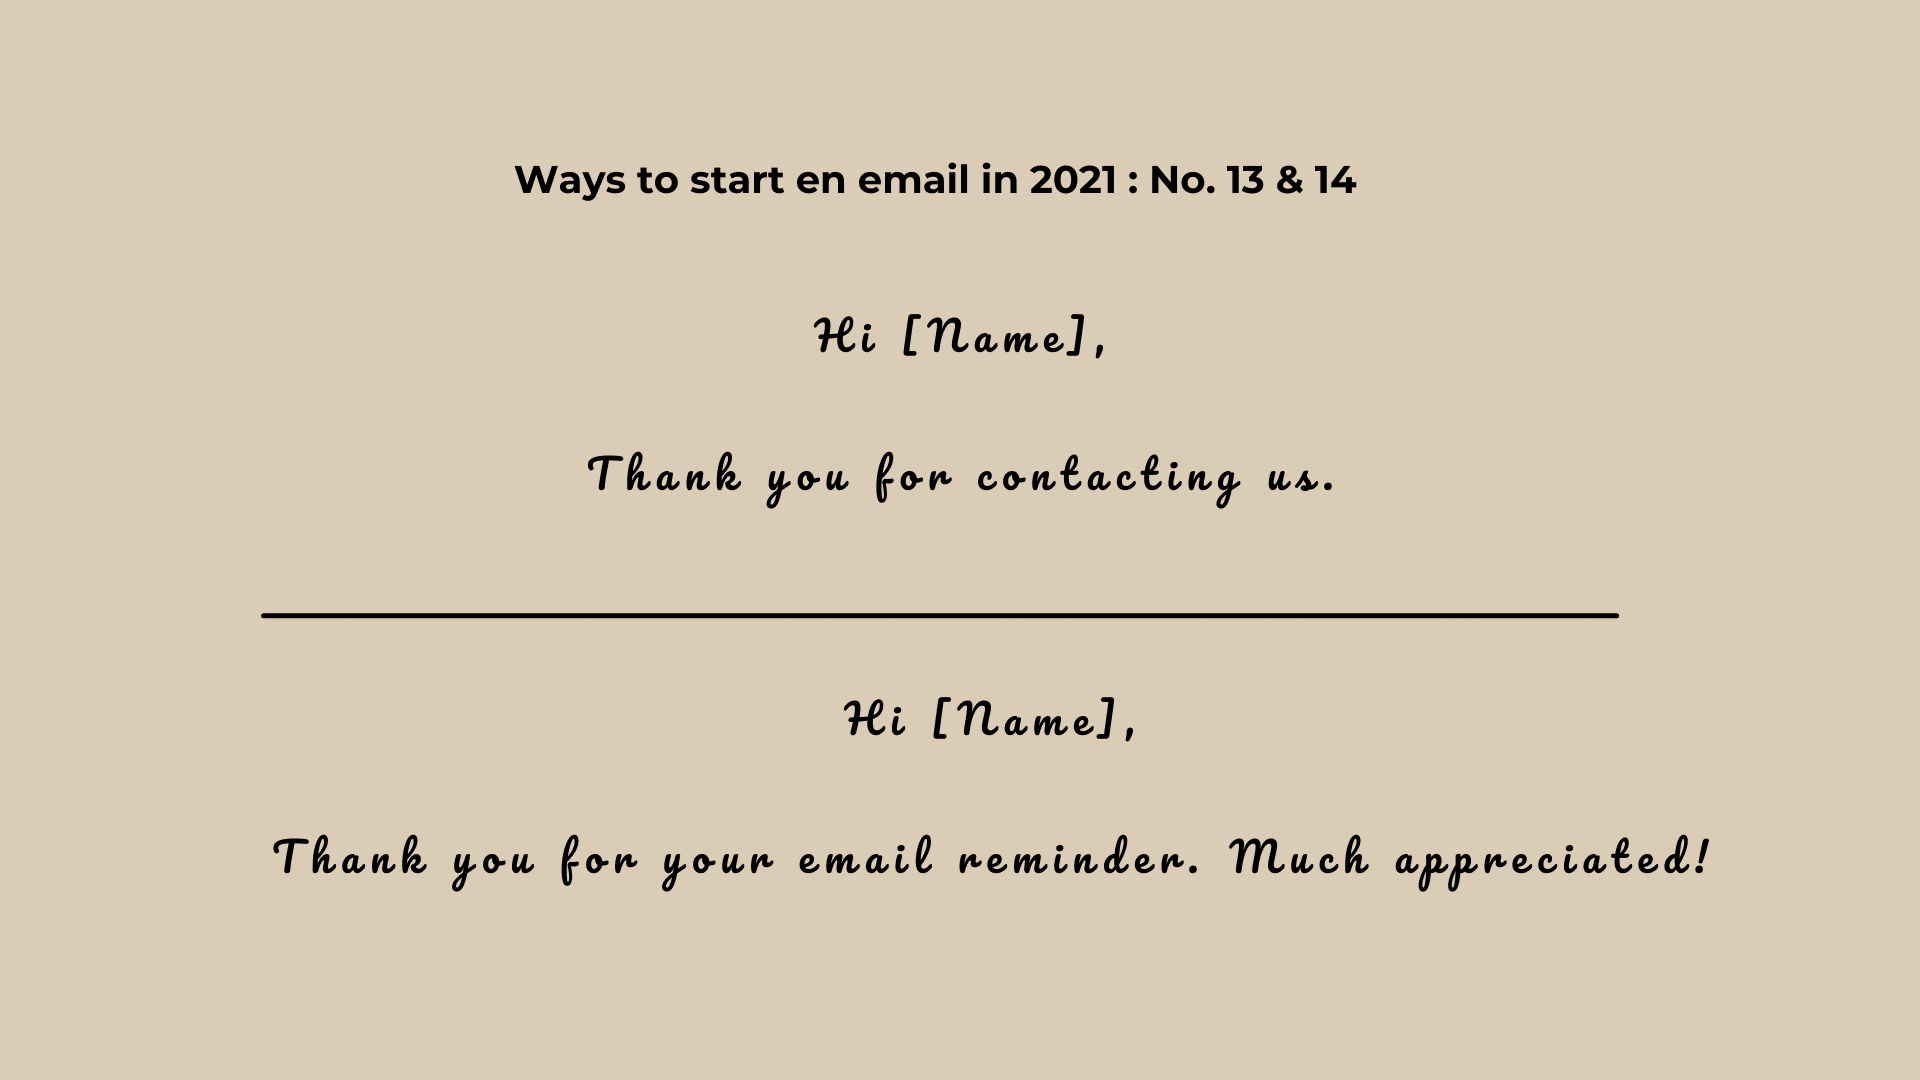 starting-an-email-in-2021-no-fail-tips